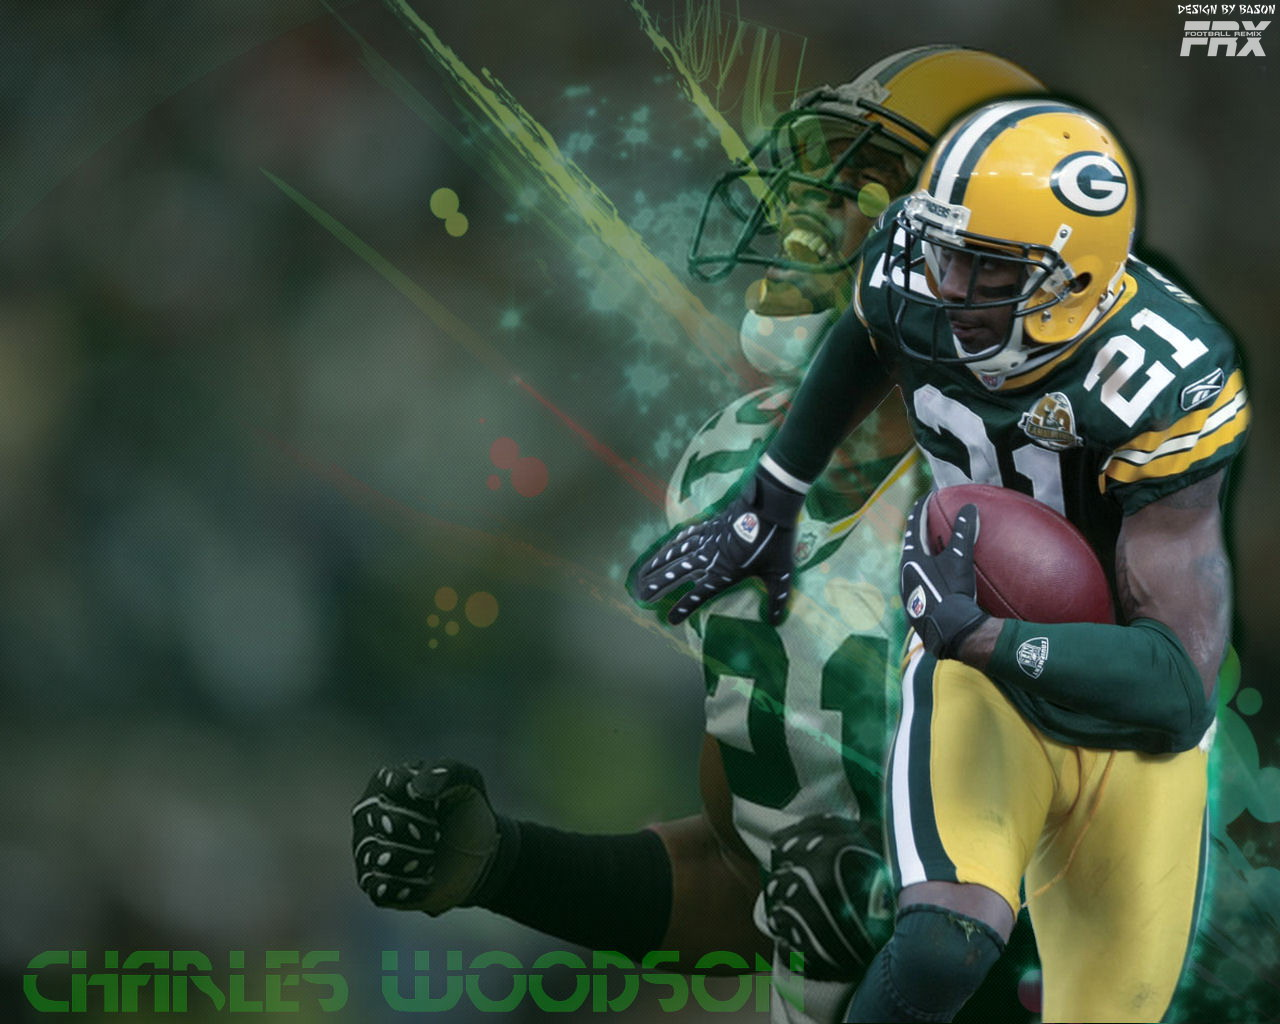 Nfl wallpapers charles woodson green bay packers - Charles woodson packers wallpaper ...